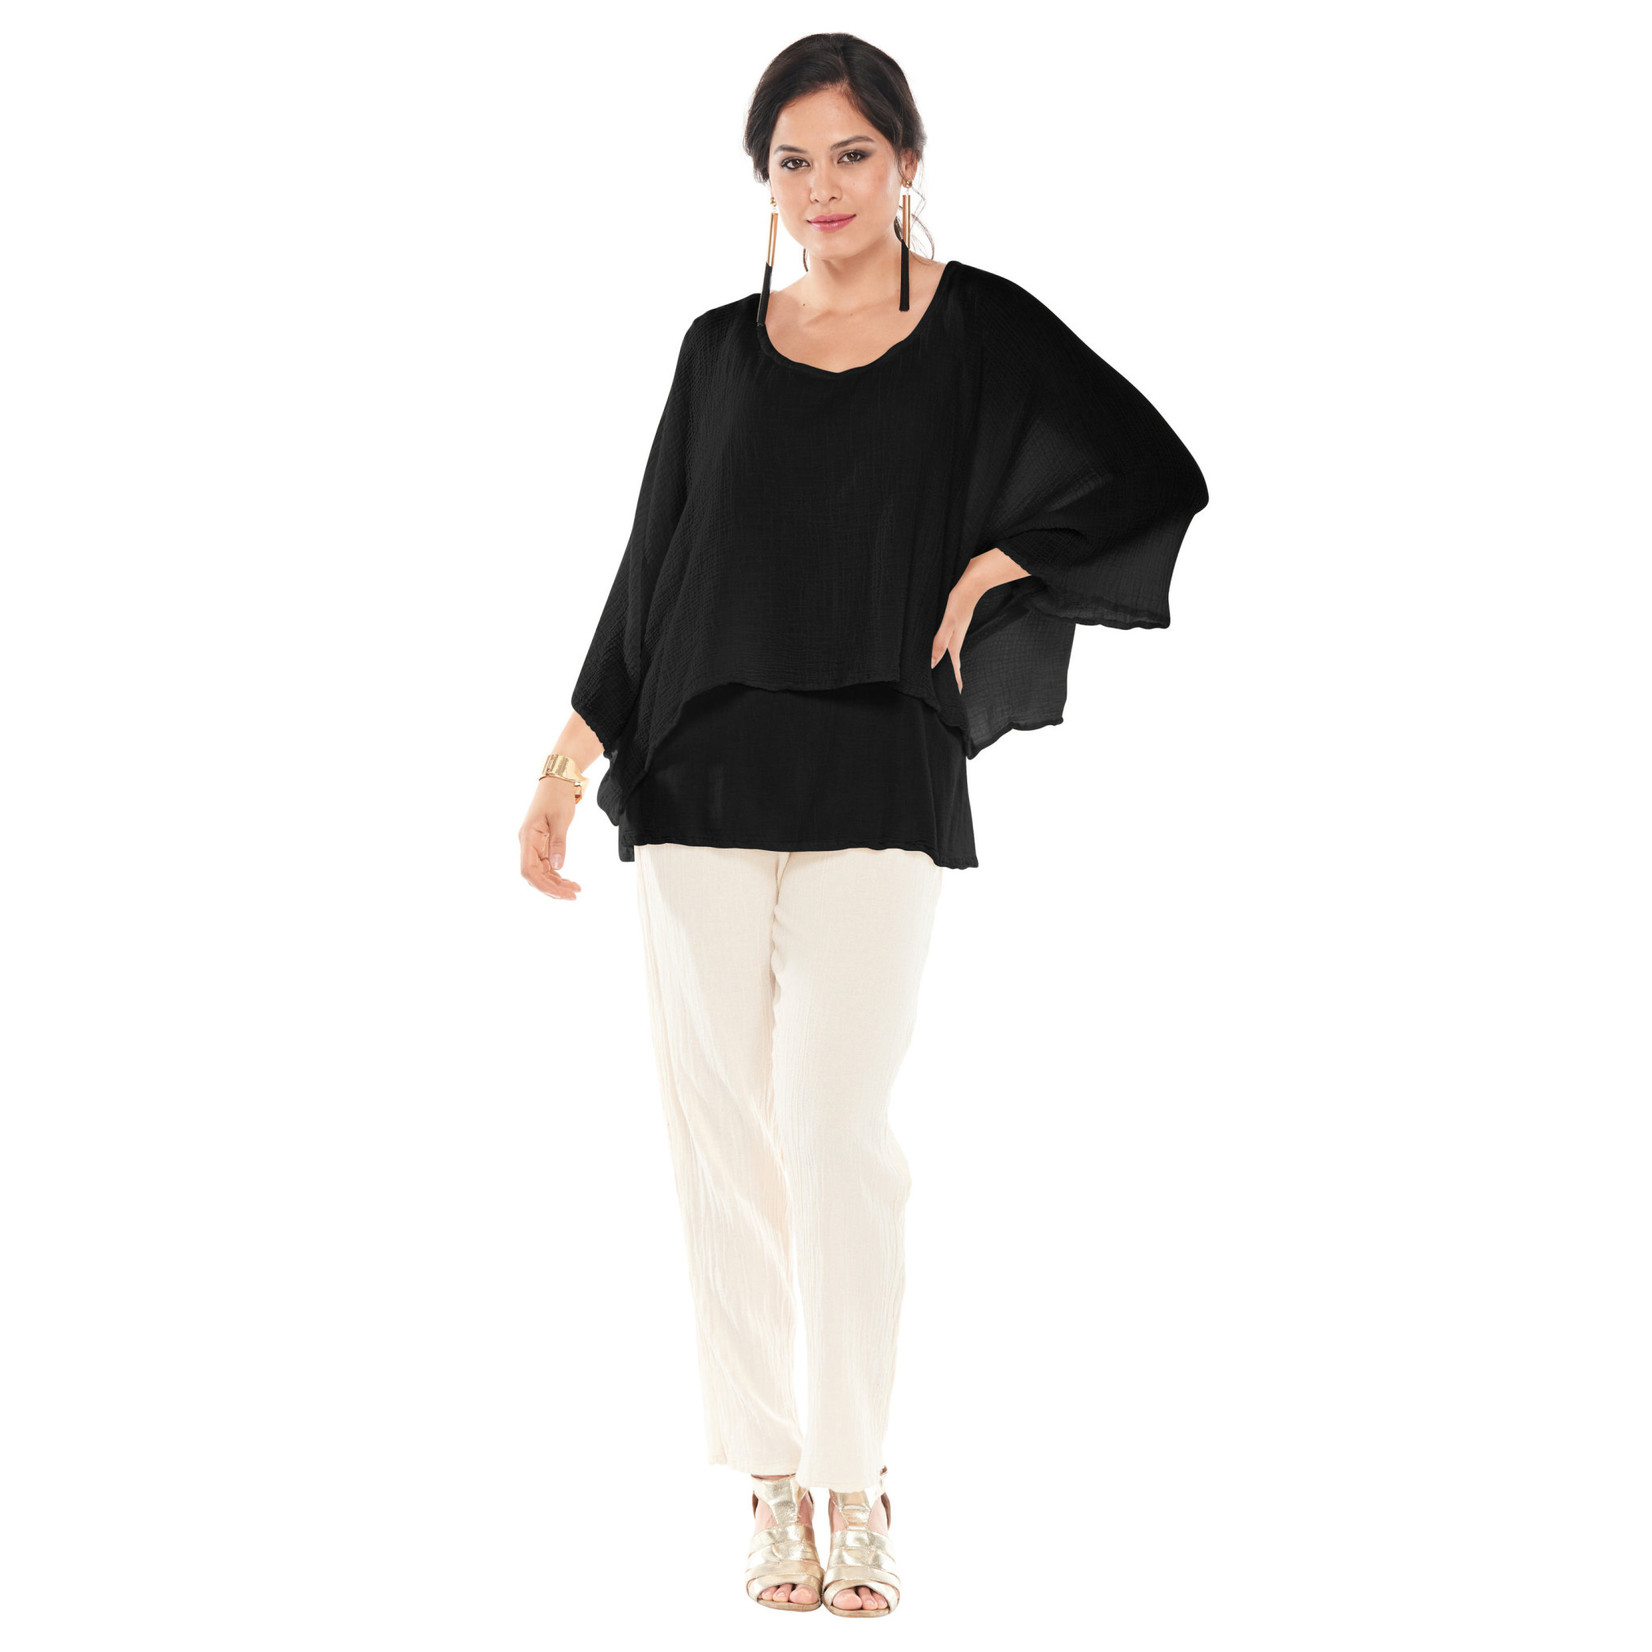 Oh My Gauze Twins Top w/ Double Layering and Flowing Sleeves